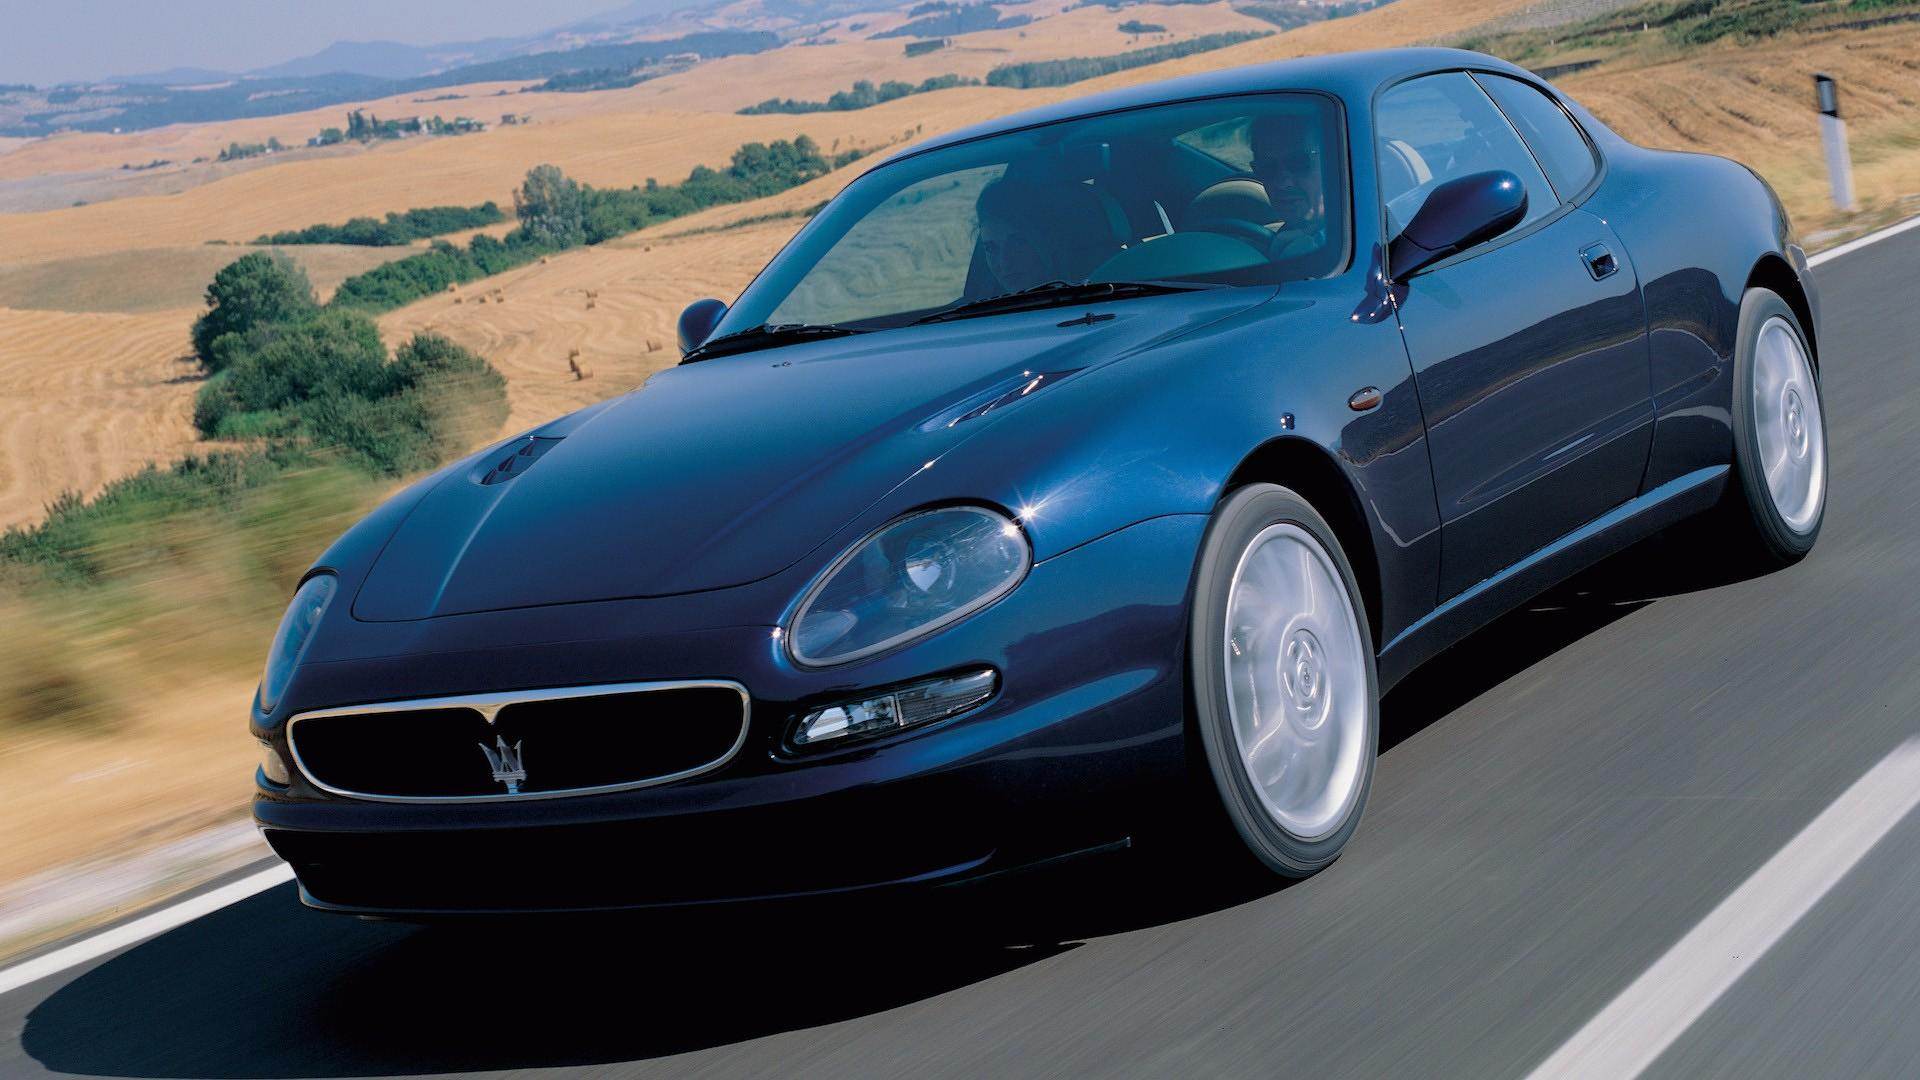 7 iconic maserati cars selected to celebrate 70 years of gt